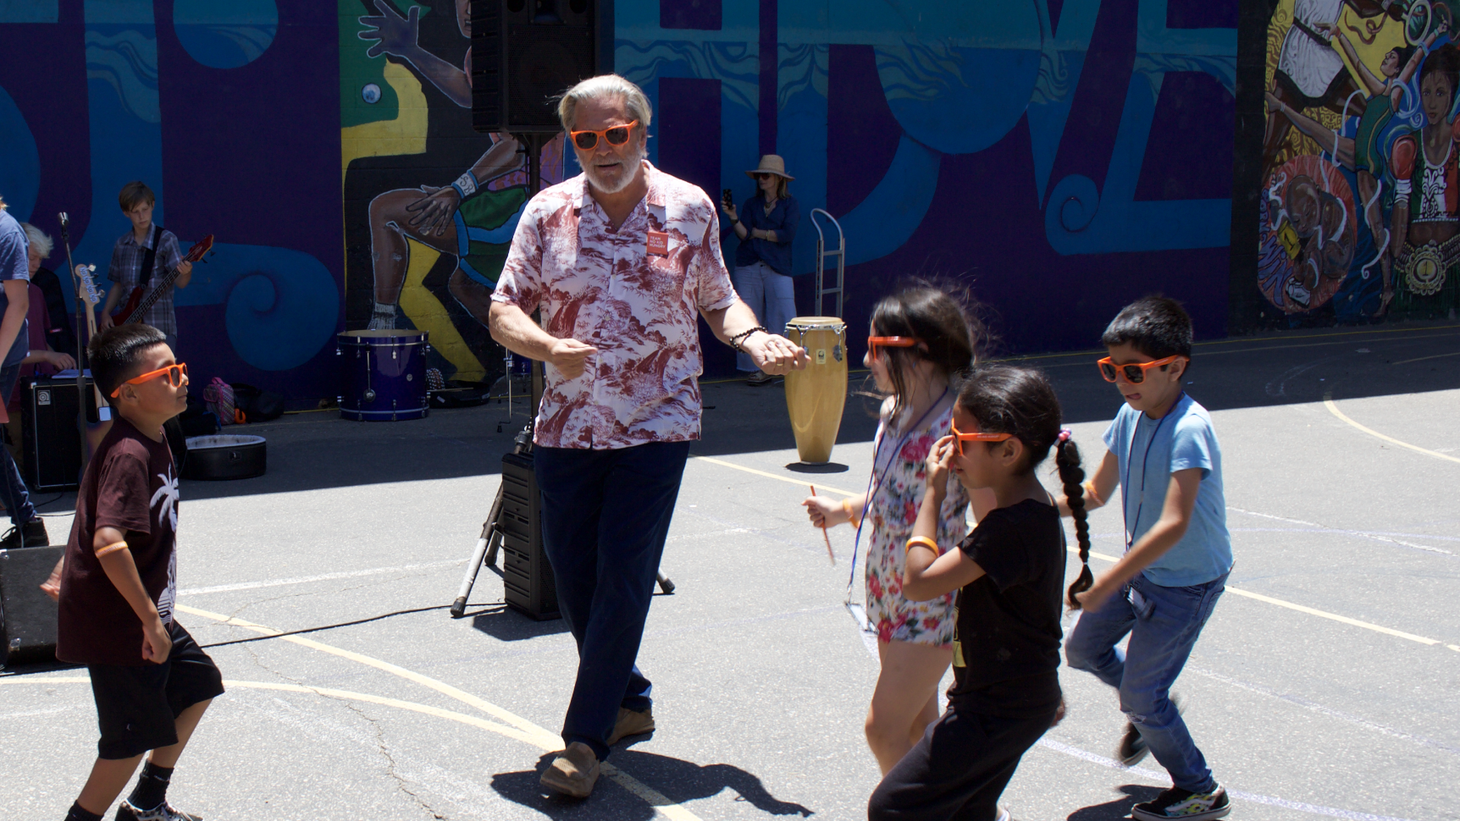 Actor and local resident, Jeff Bridges, dances with local kids as young musicians rock out to the classics.